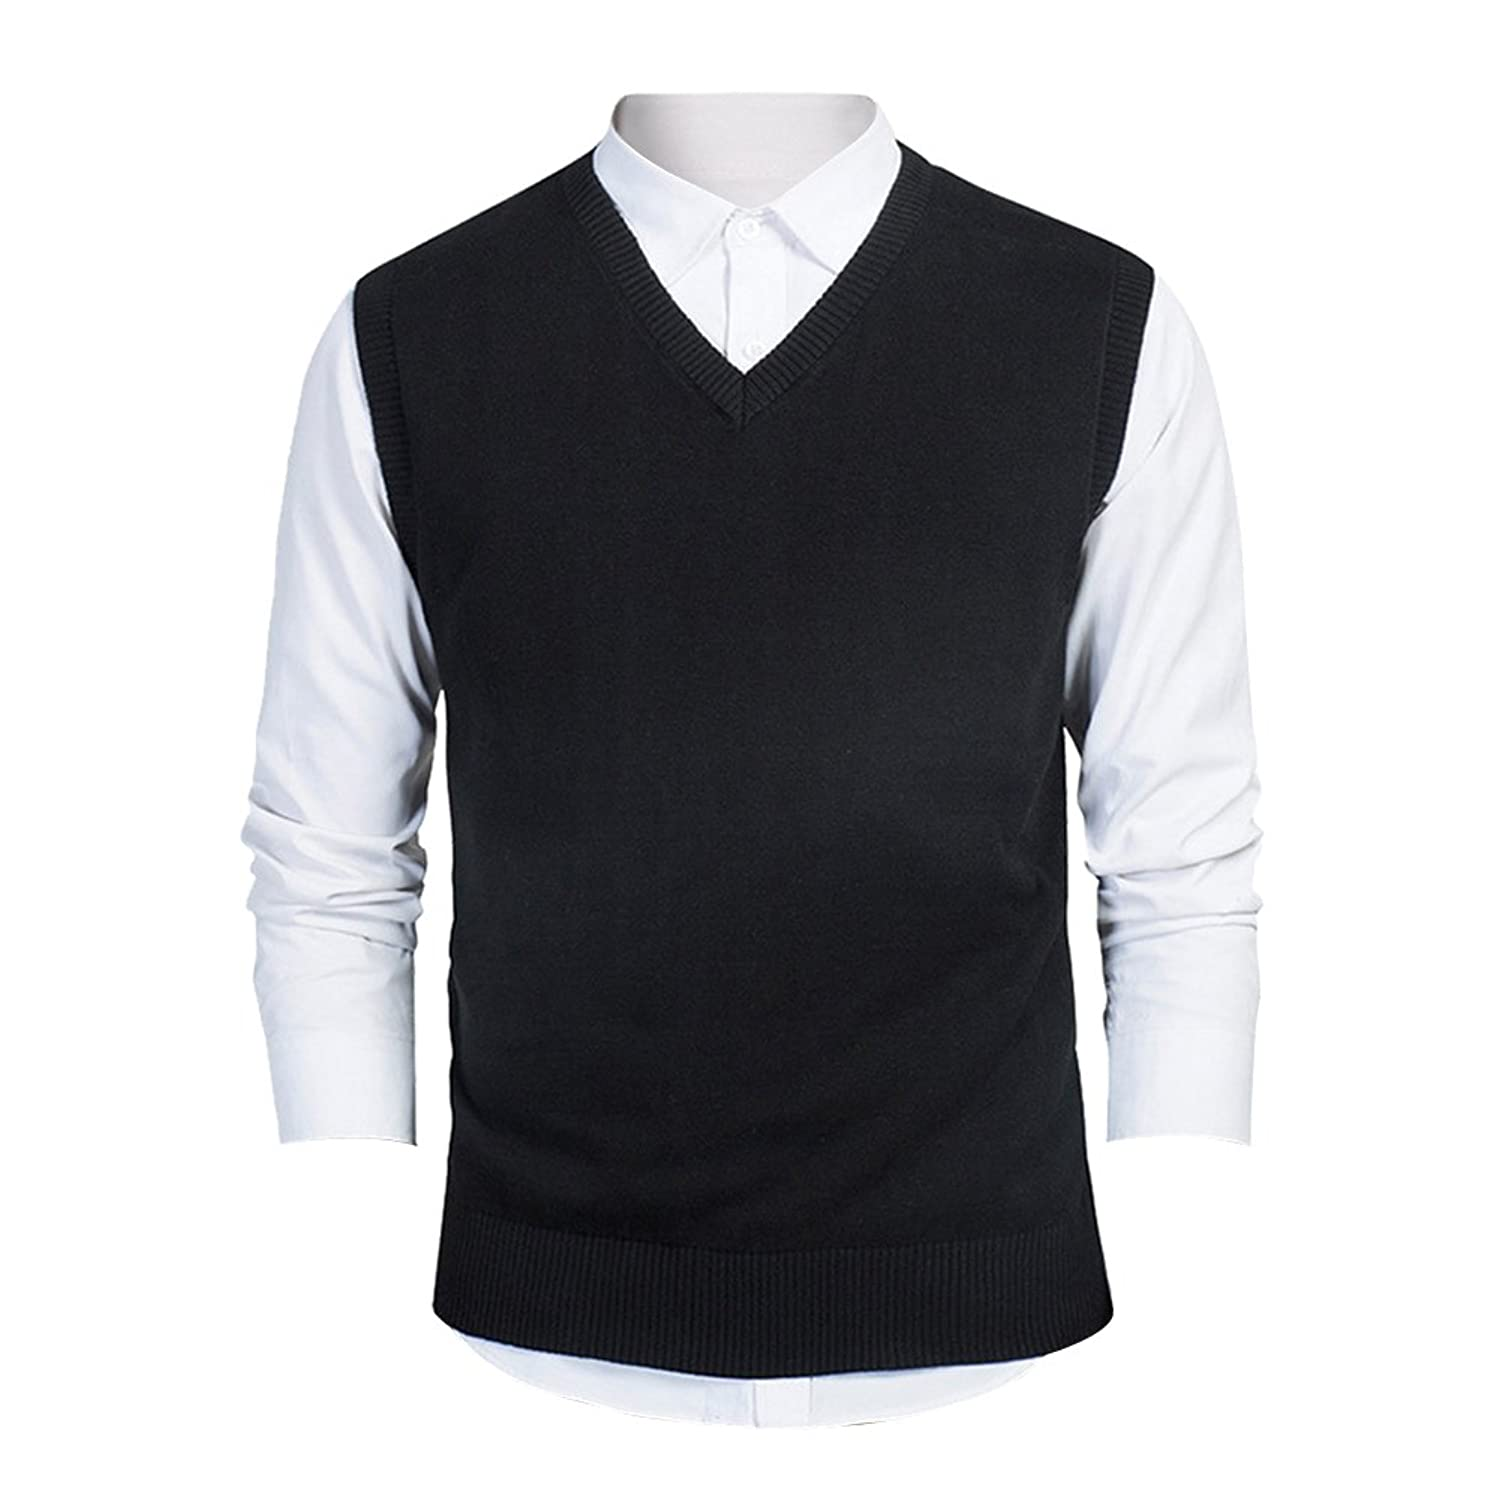 lovely TopTie Mens Business Solid Color Plain Sweater Vest, Cotton ...